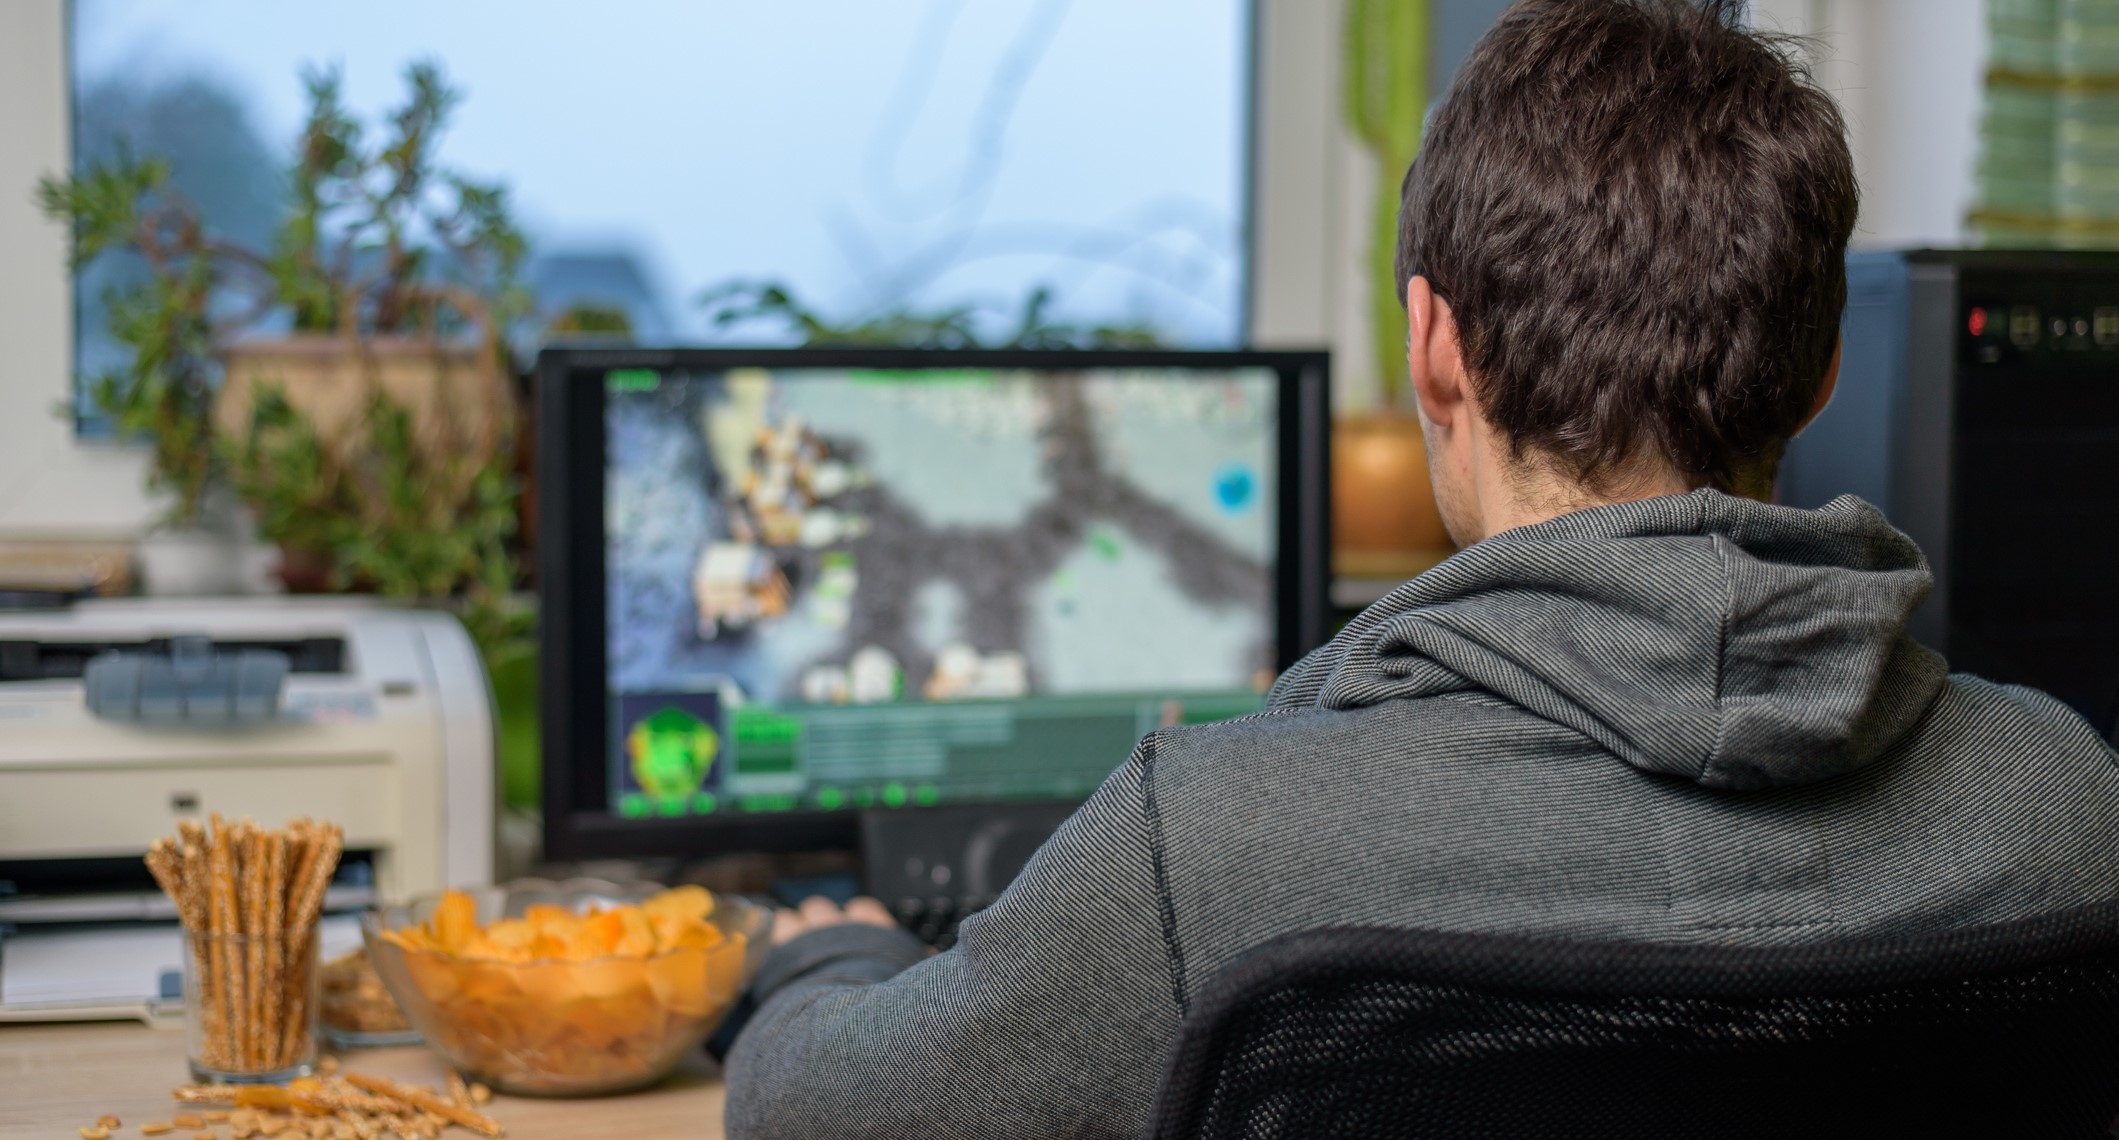 male gamer playing strategy game on computer with snacks lying on table - stock photomale gamer playing strategy game on computer with snacks lying on table - stock photomale gamer playing strategy game on computer with snacks lying on table - stock photo